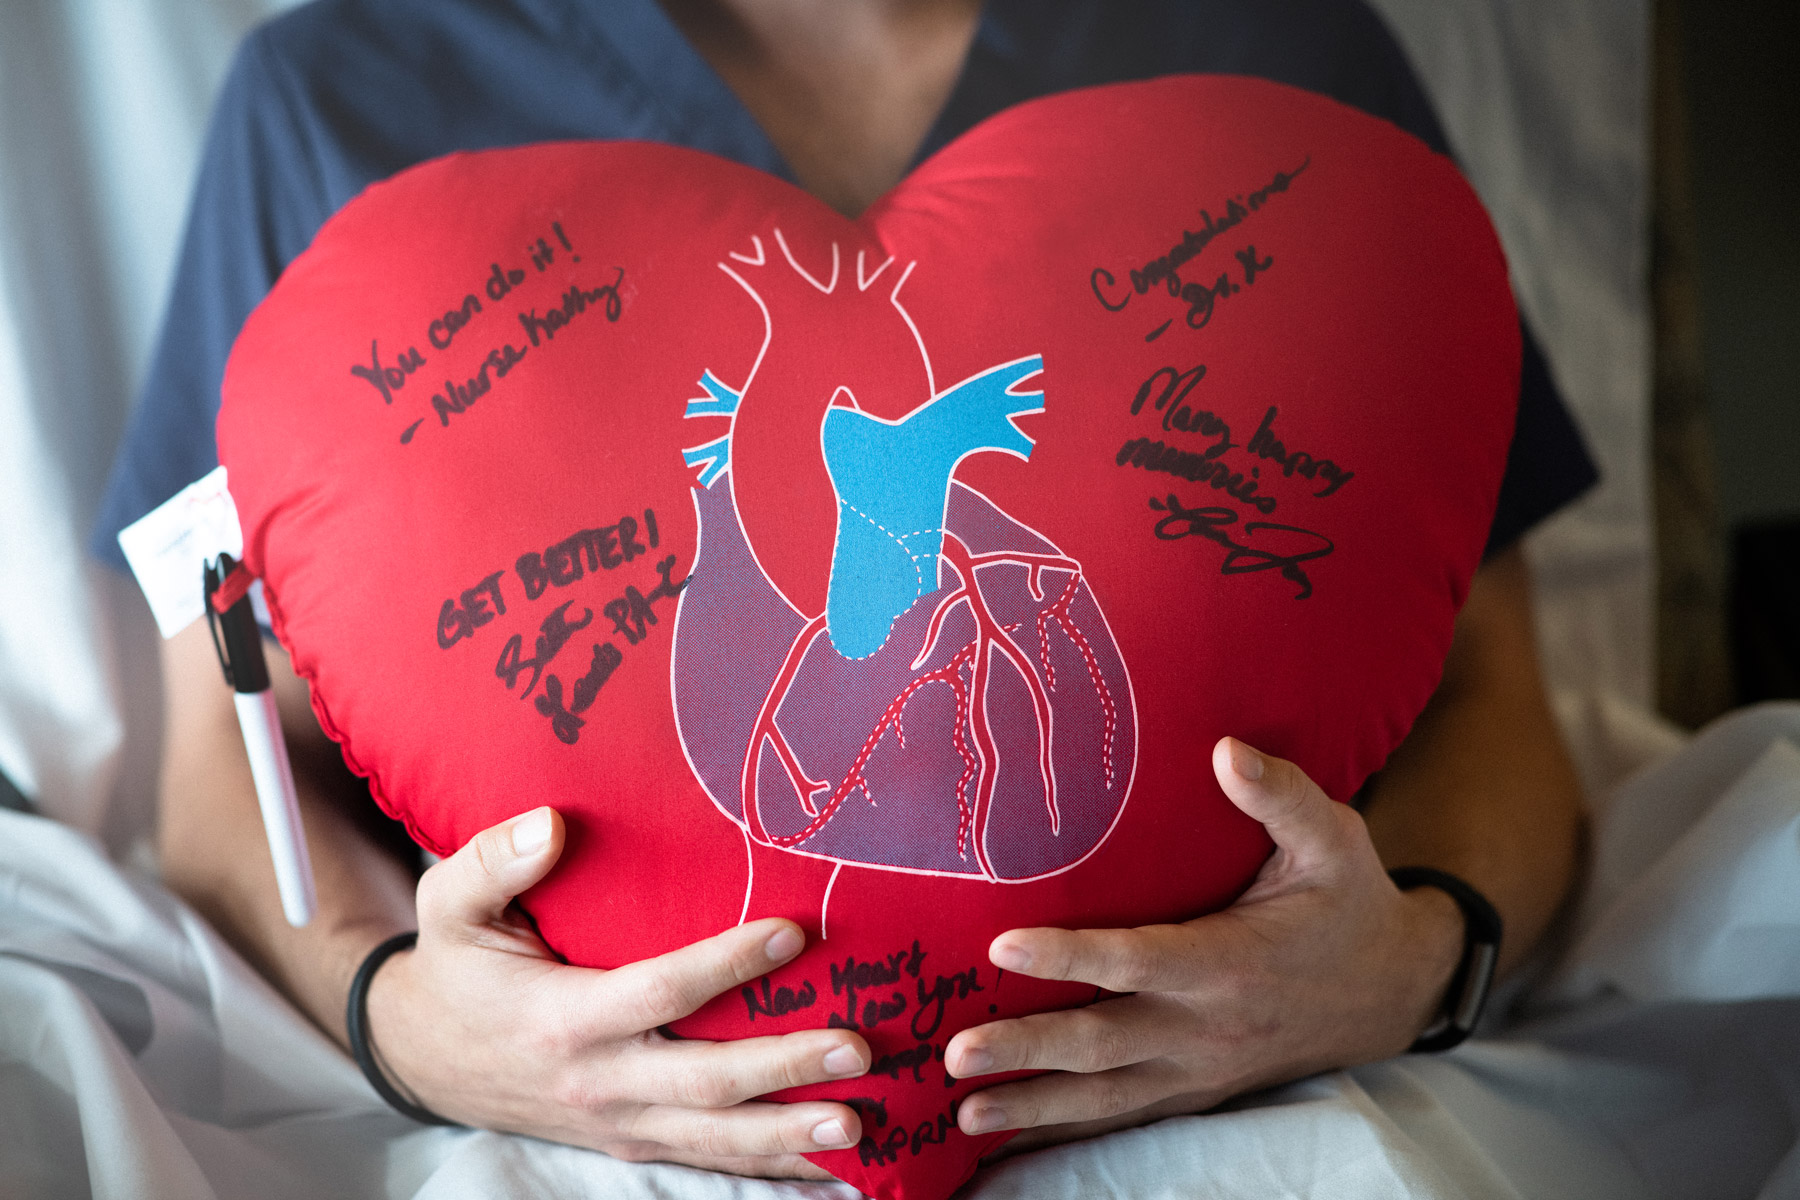 A large, red, plush heart with an anatomical heart printed in the front is signed in sharpie by members of the patient's care team at the hospital.